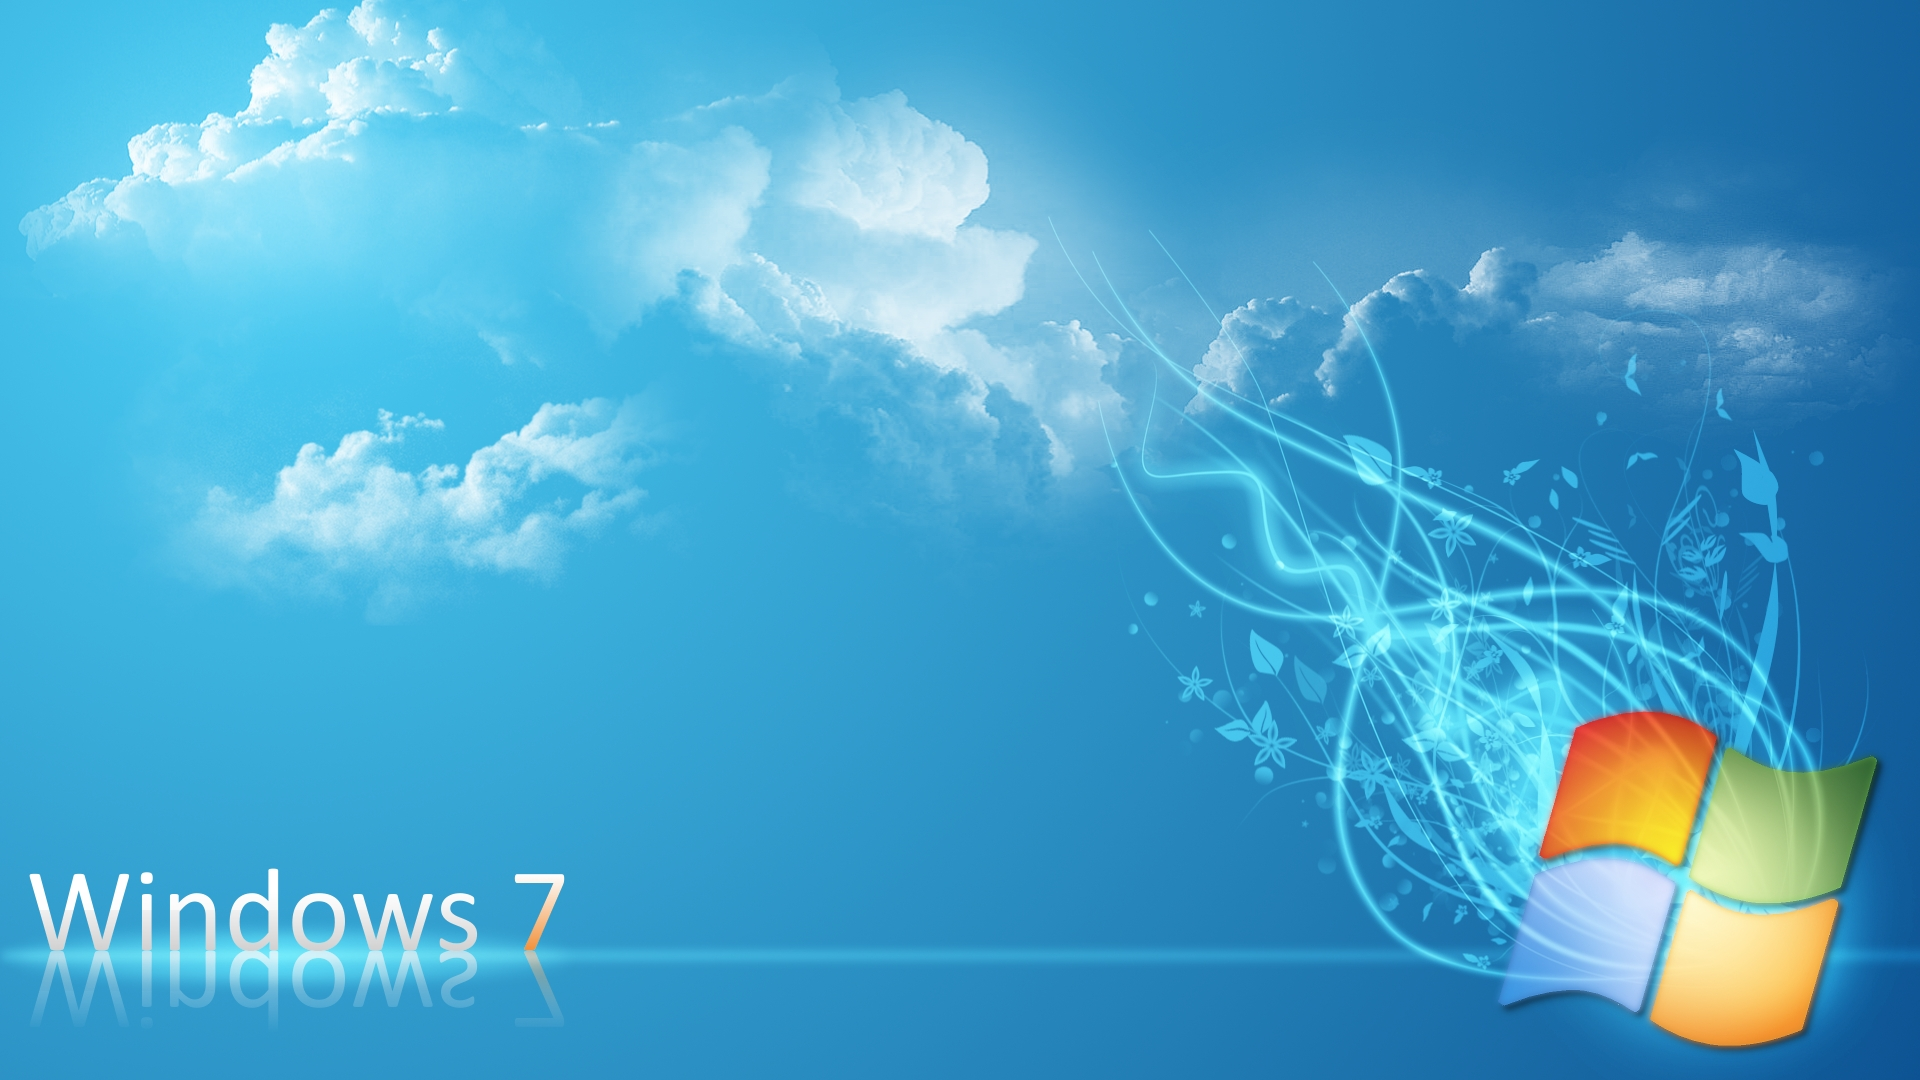 To buy new Windows 7 at great price check this out 1920x1080